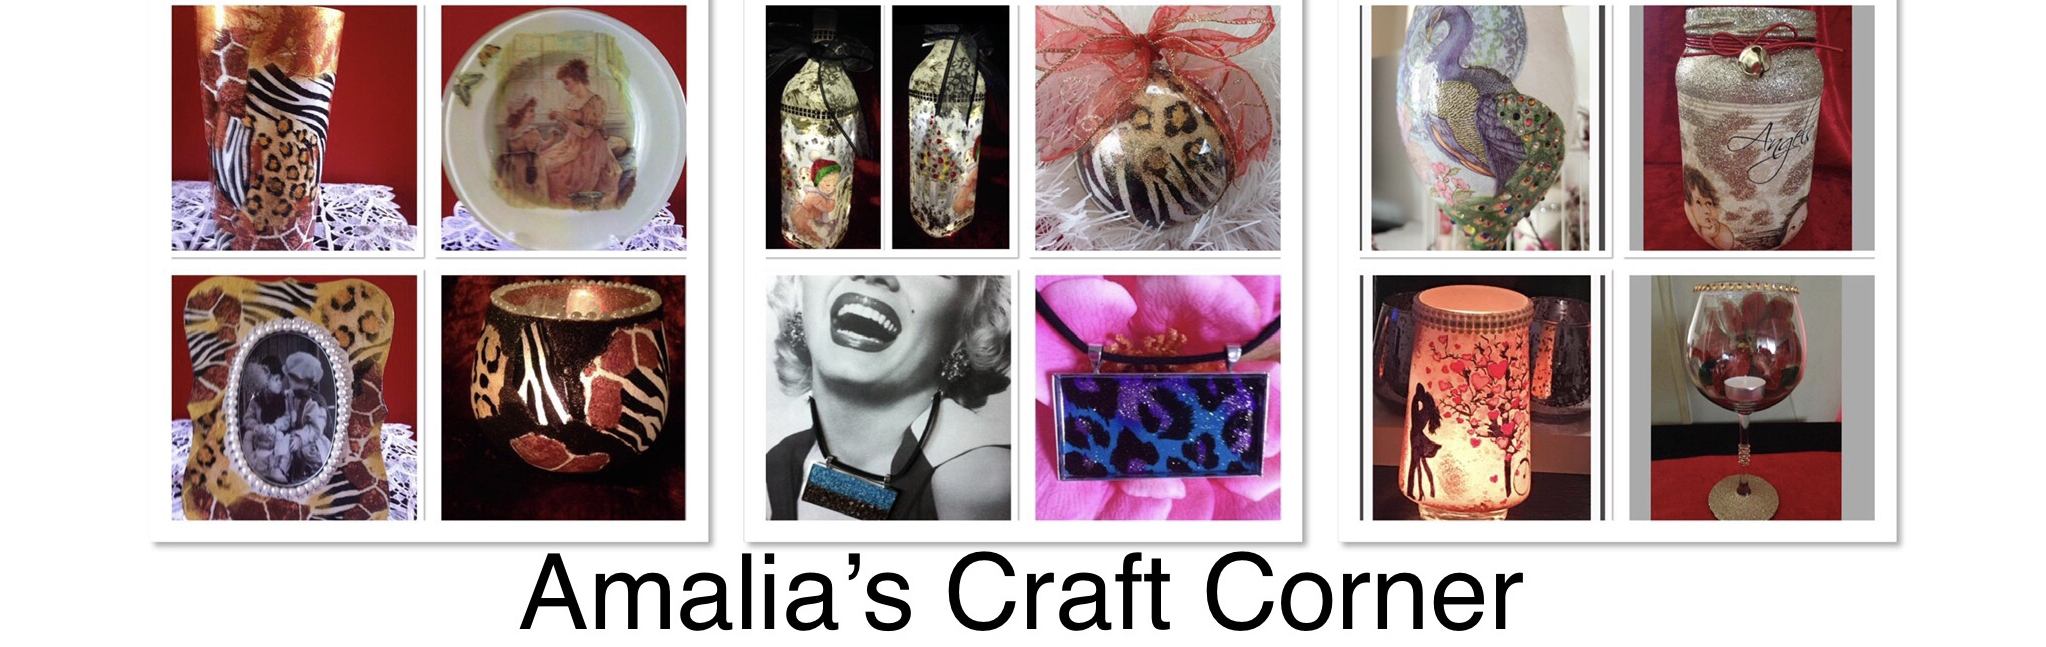 Amalia's Craft Corner